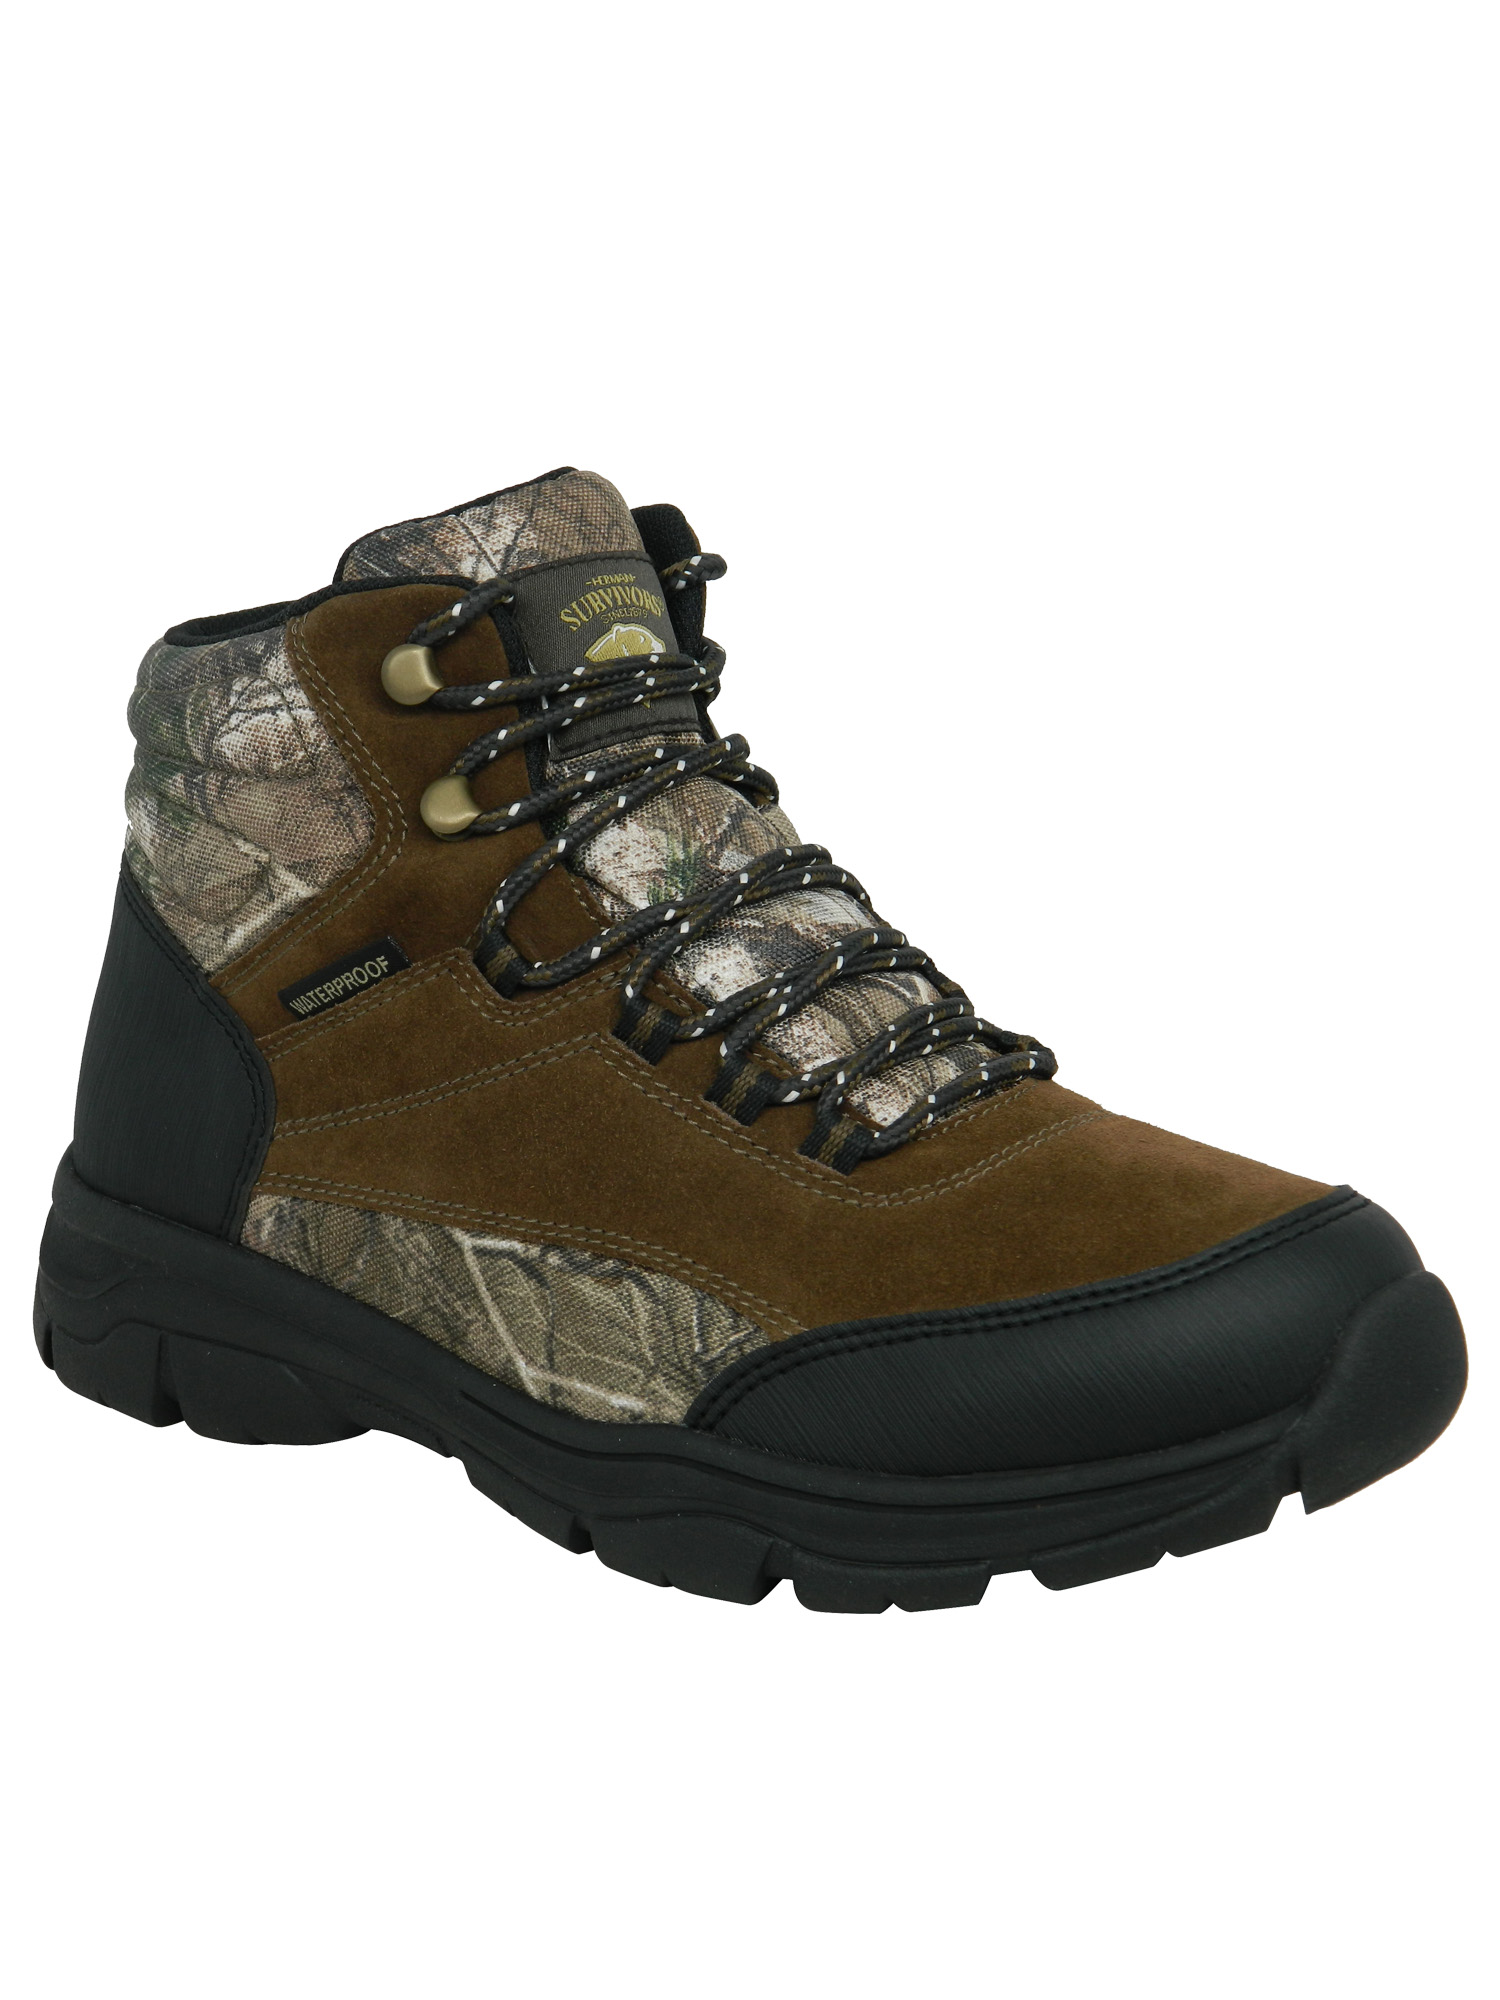 FarJing Mens Flat Casual Non-slip Comfort Boots Outdoor Hiking Boots Shoes